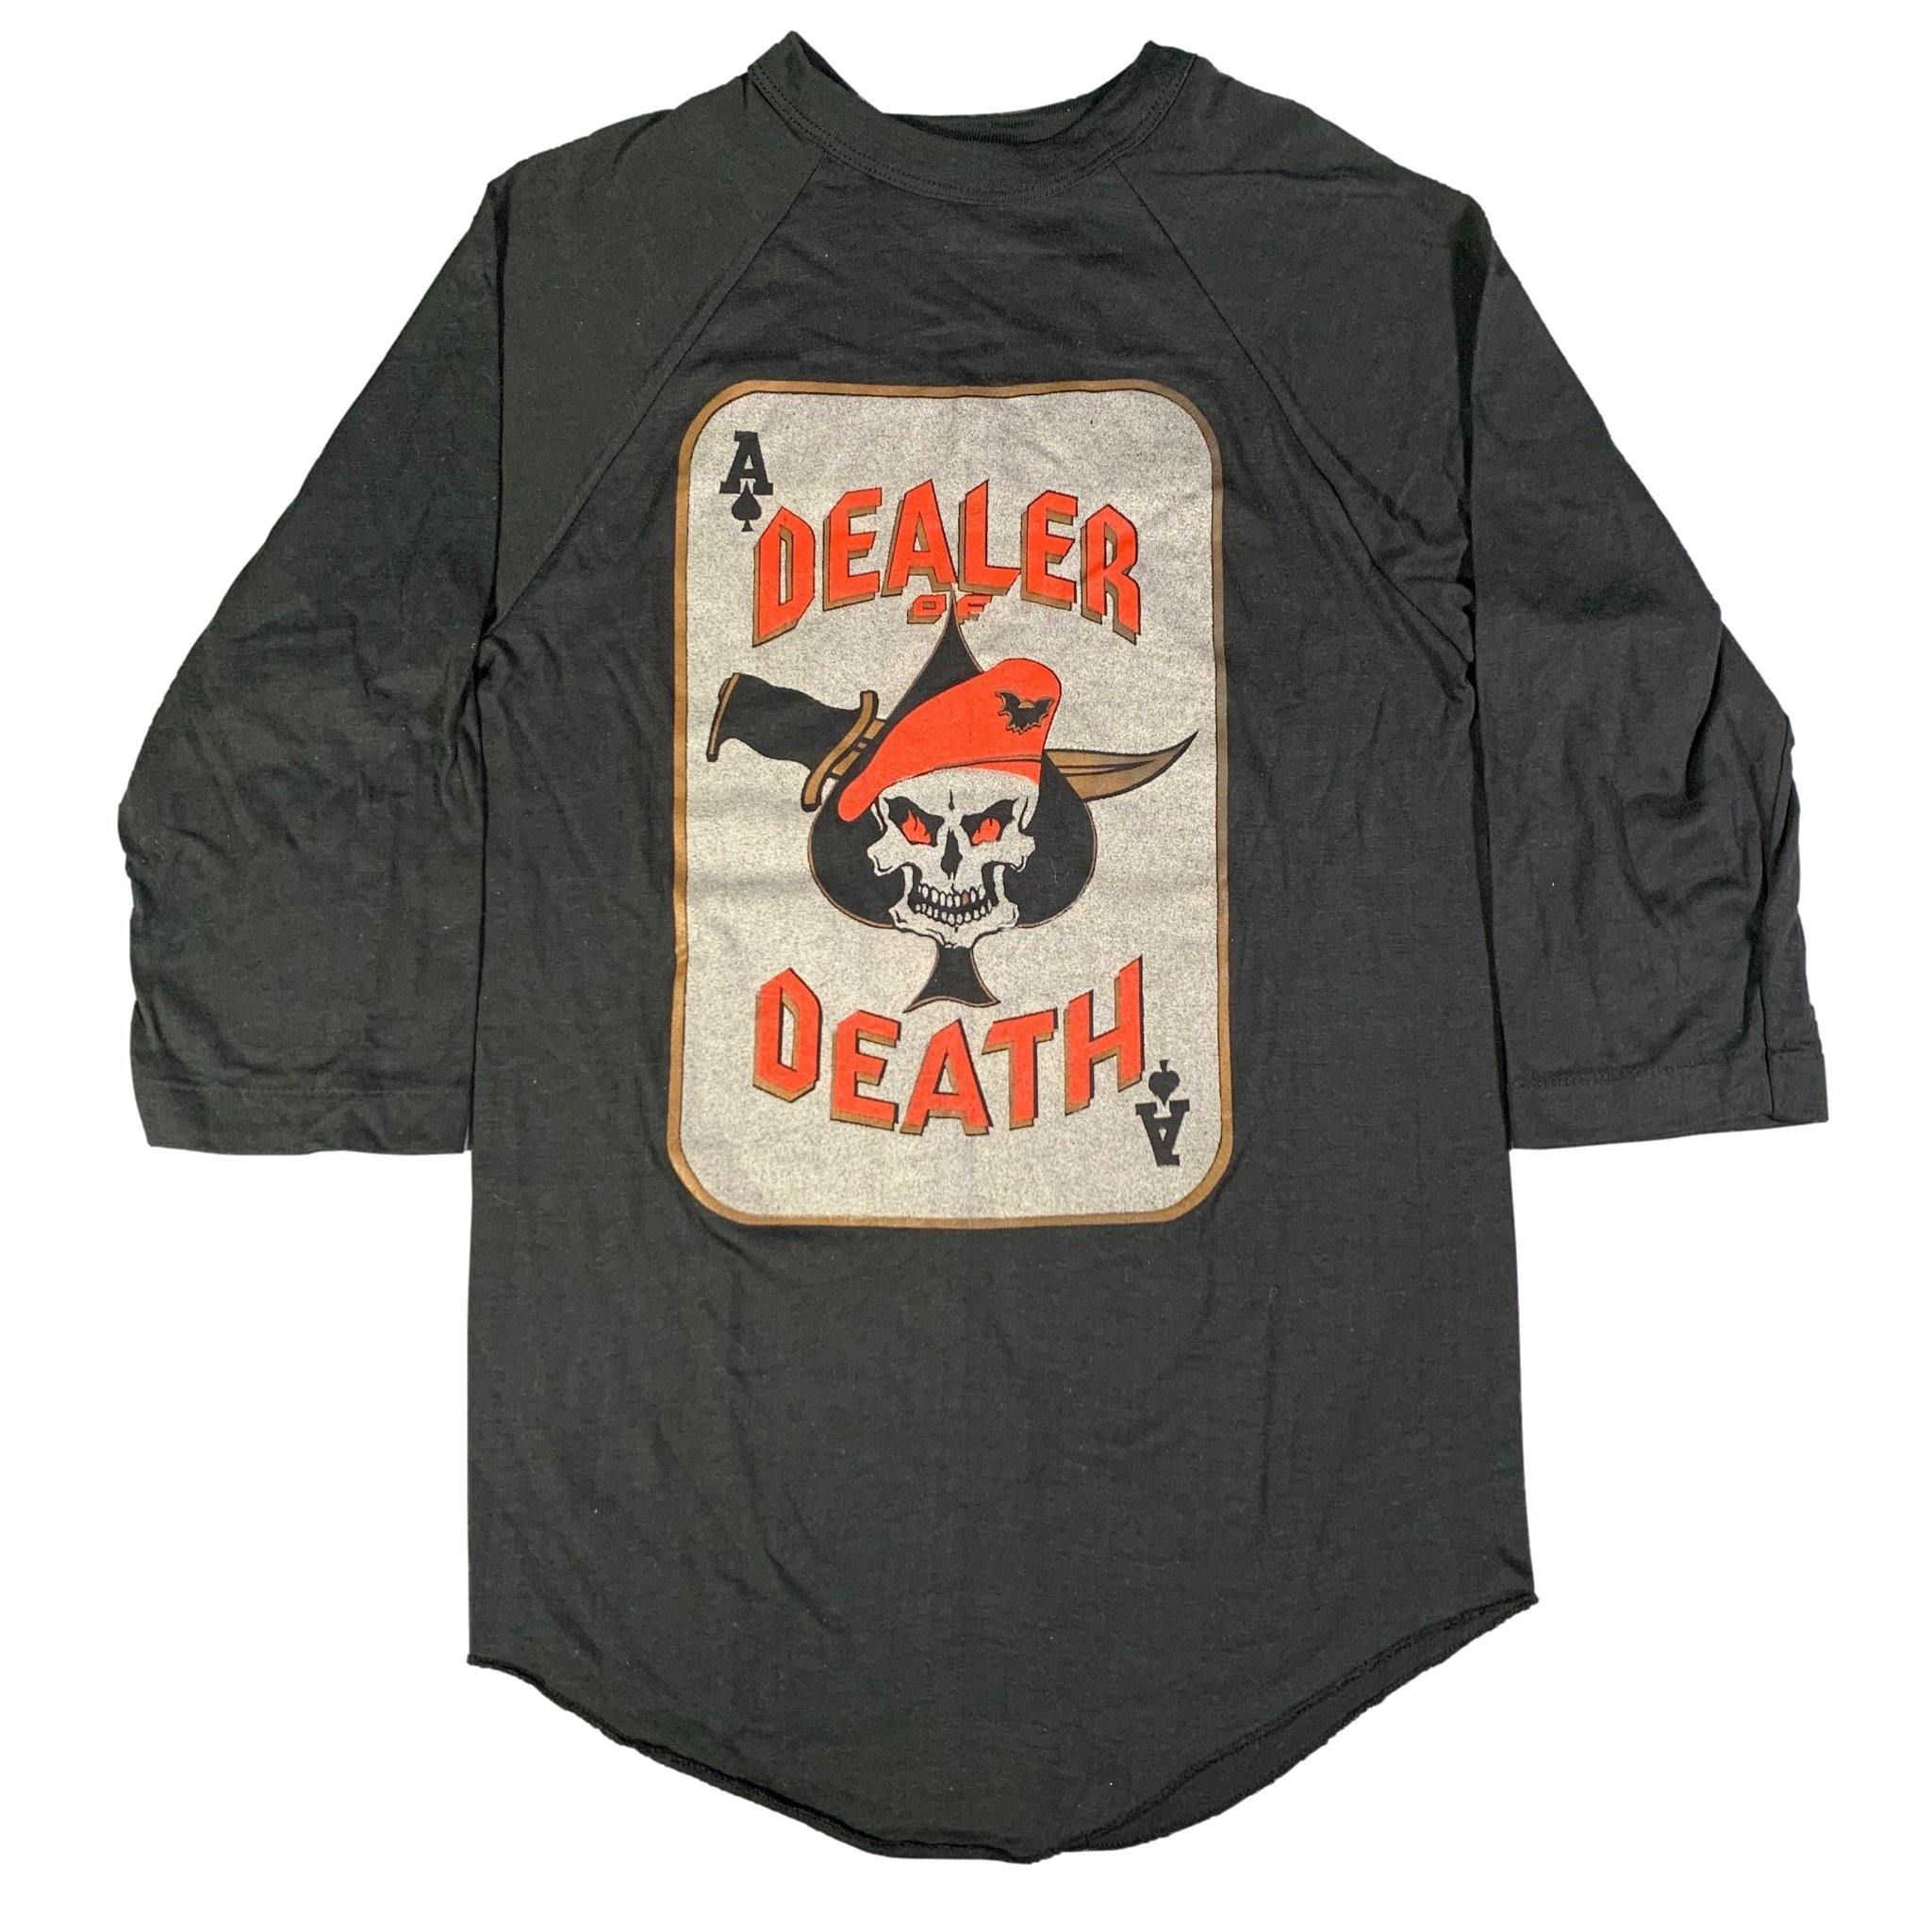 Vintage Original Aces Dealer of Death Raglan Shirt